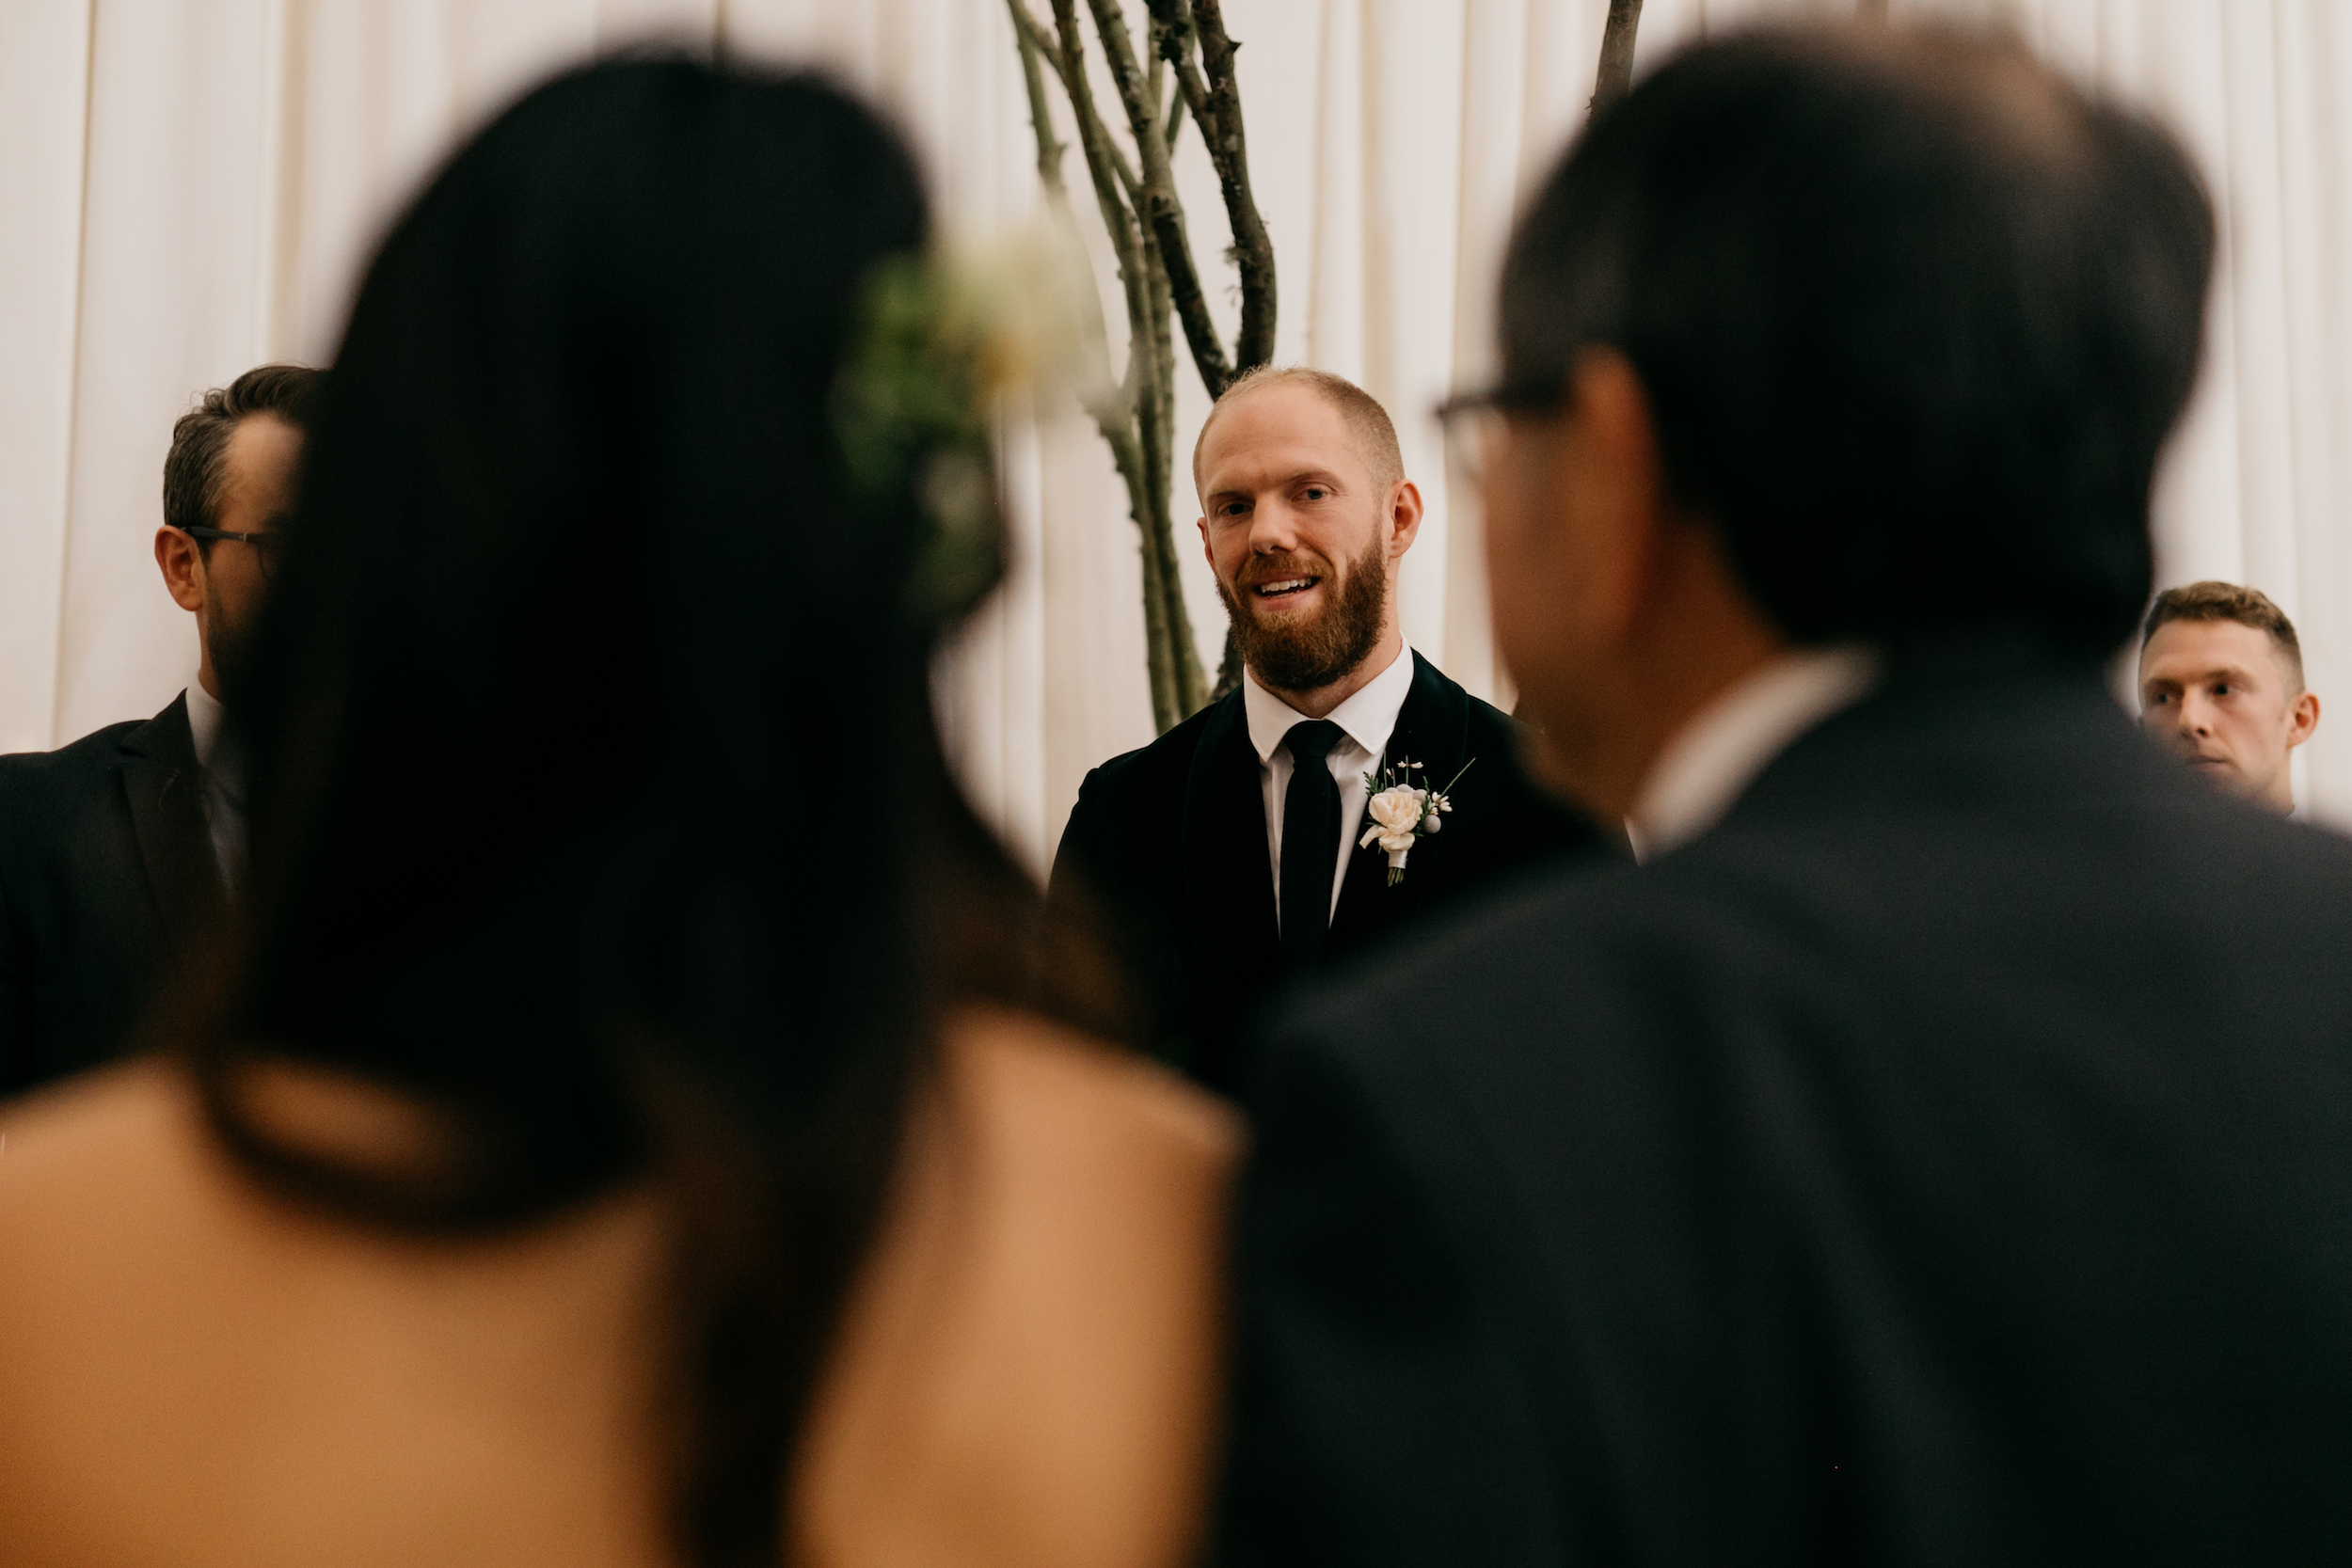 seattle - wedding - photographer470.jpg